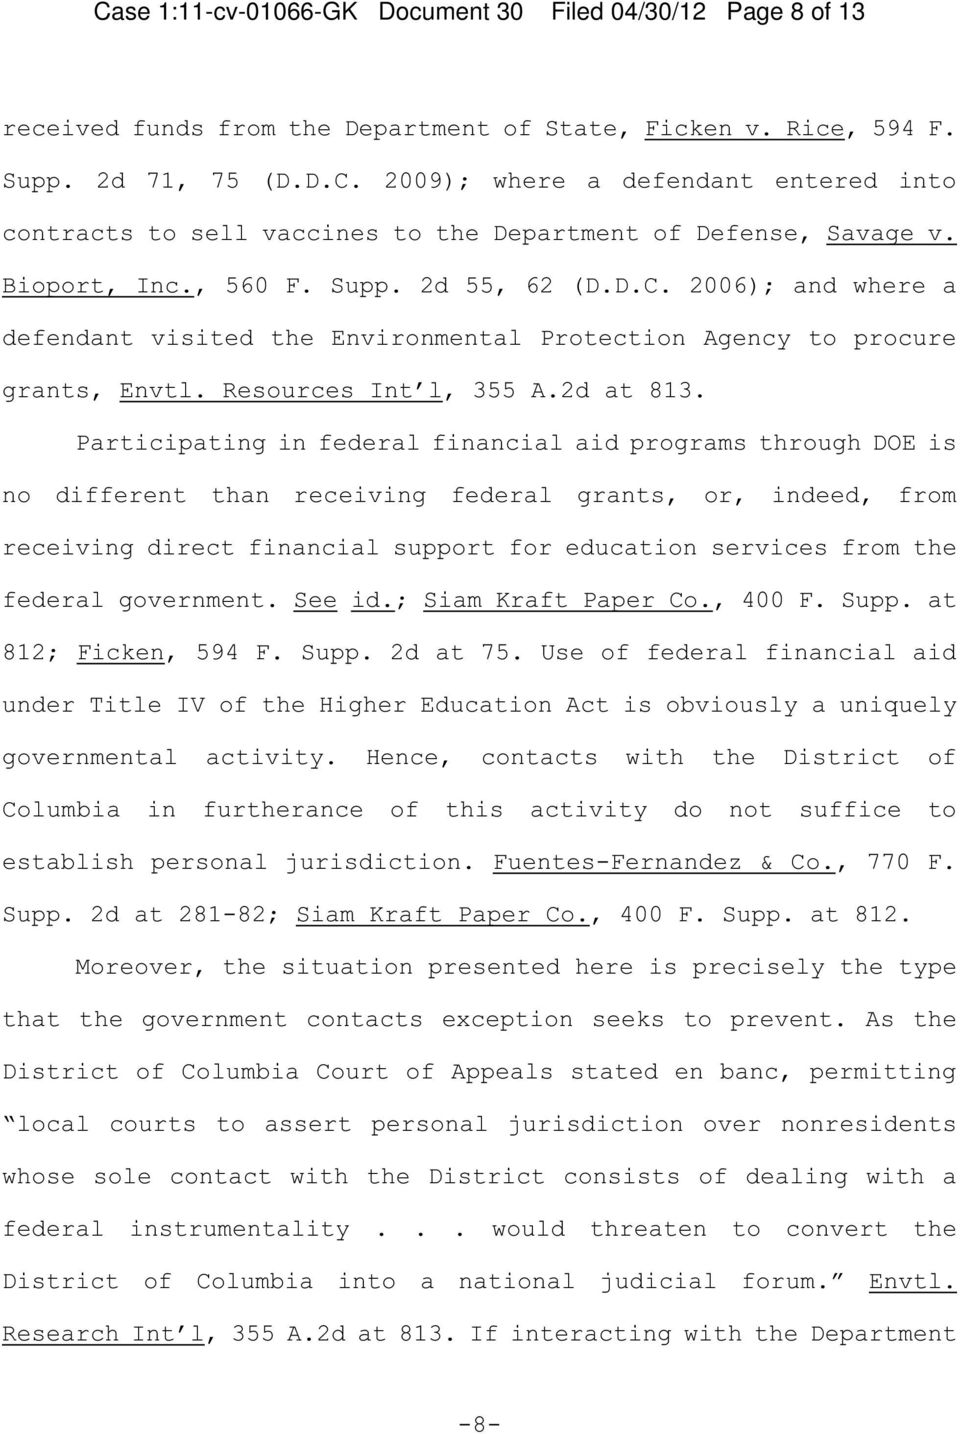 Participating in federal financial aid programs through DOE is no different than receiving federal grants, or, indeed, from receiving direct financial support for education services from the federal